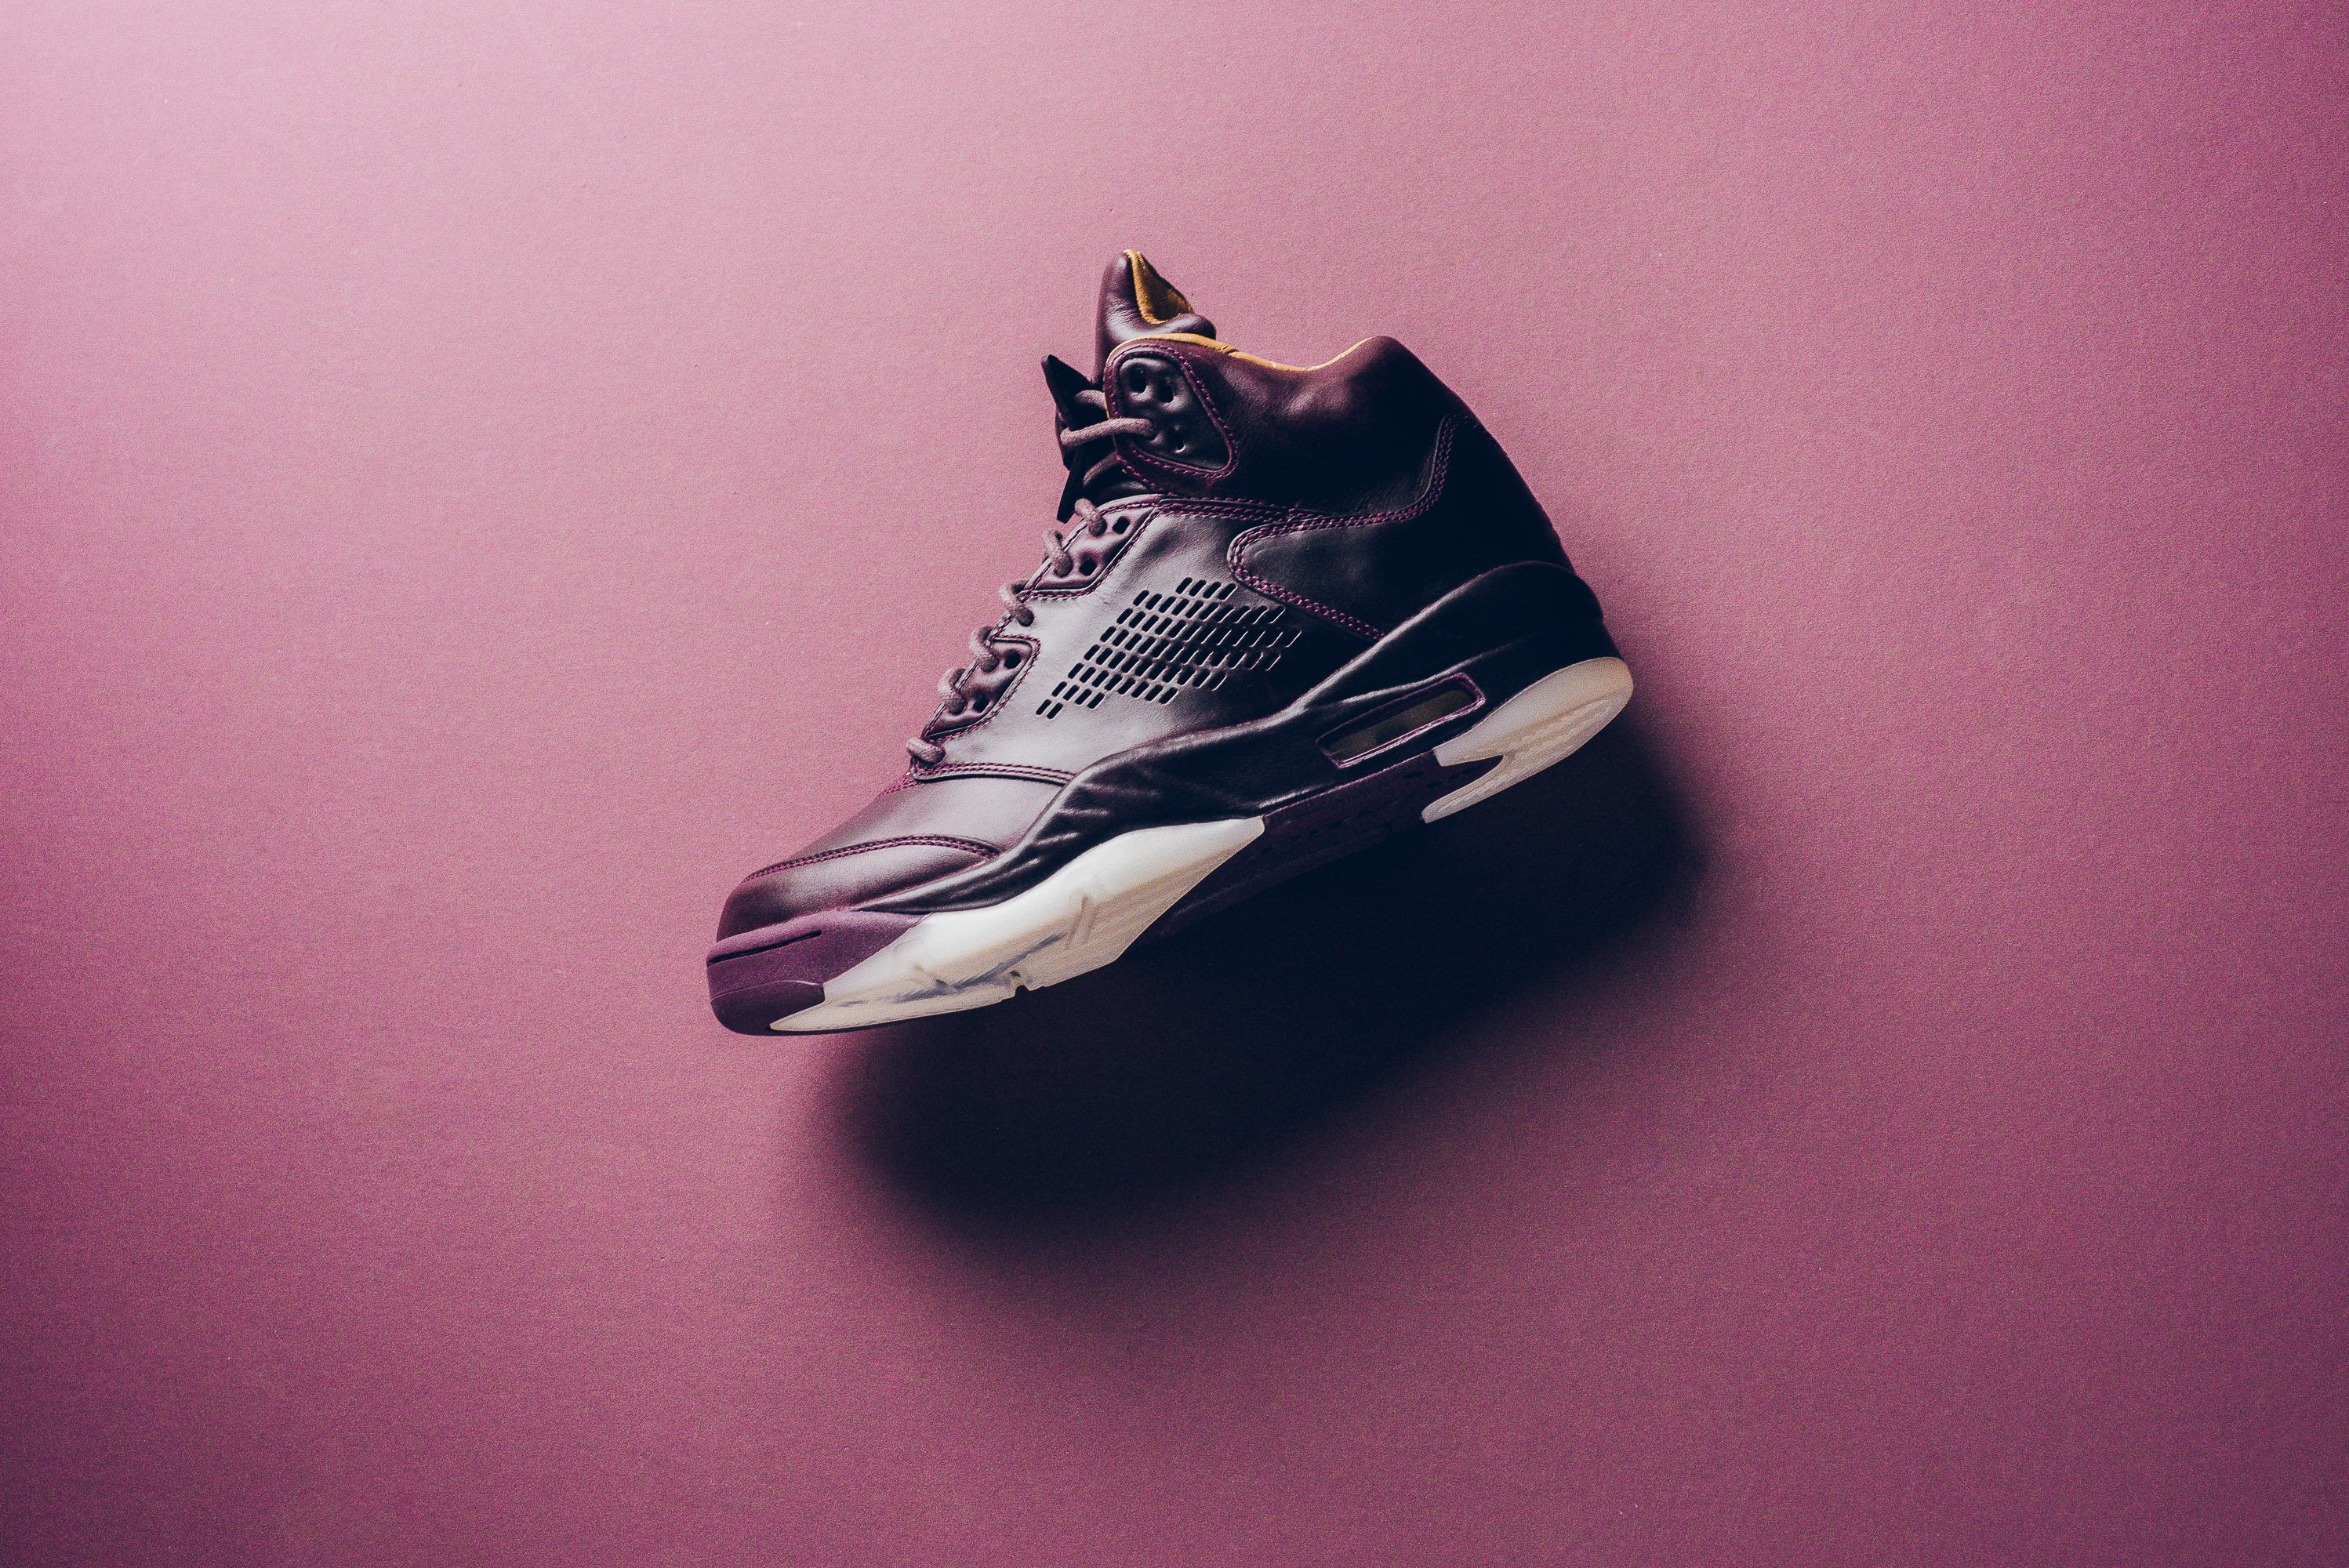 Air_JOrdan_5_retro_Premium_bordeaux_881432_612_sneaker_politics_Instagram_1-2